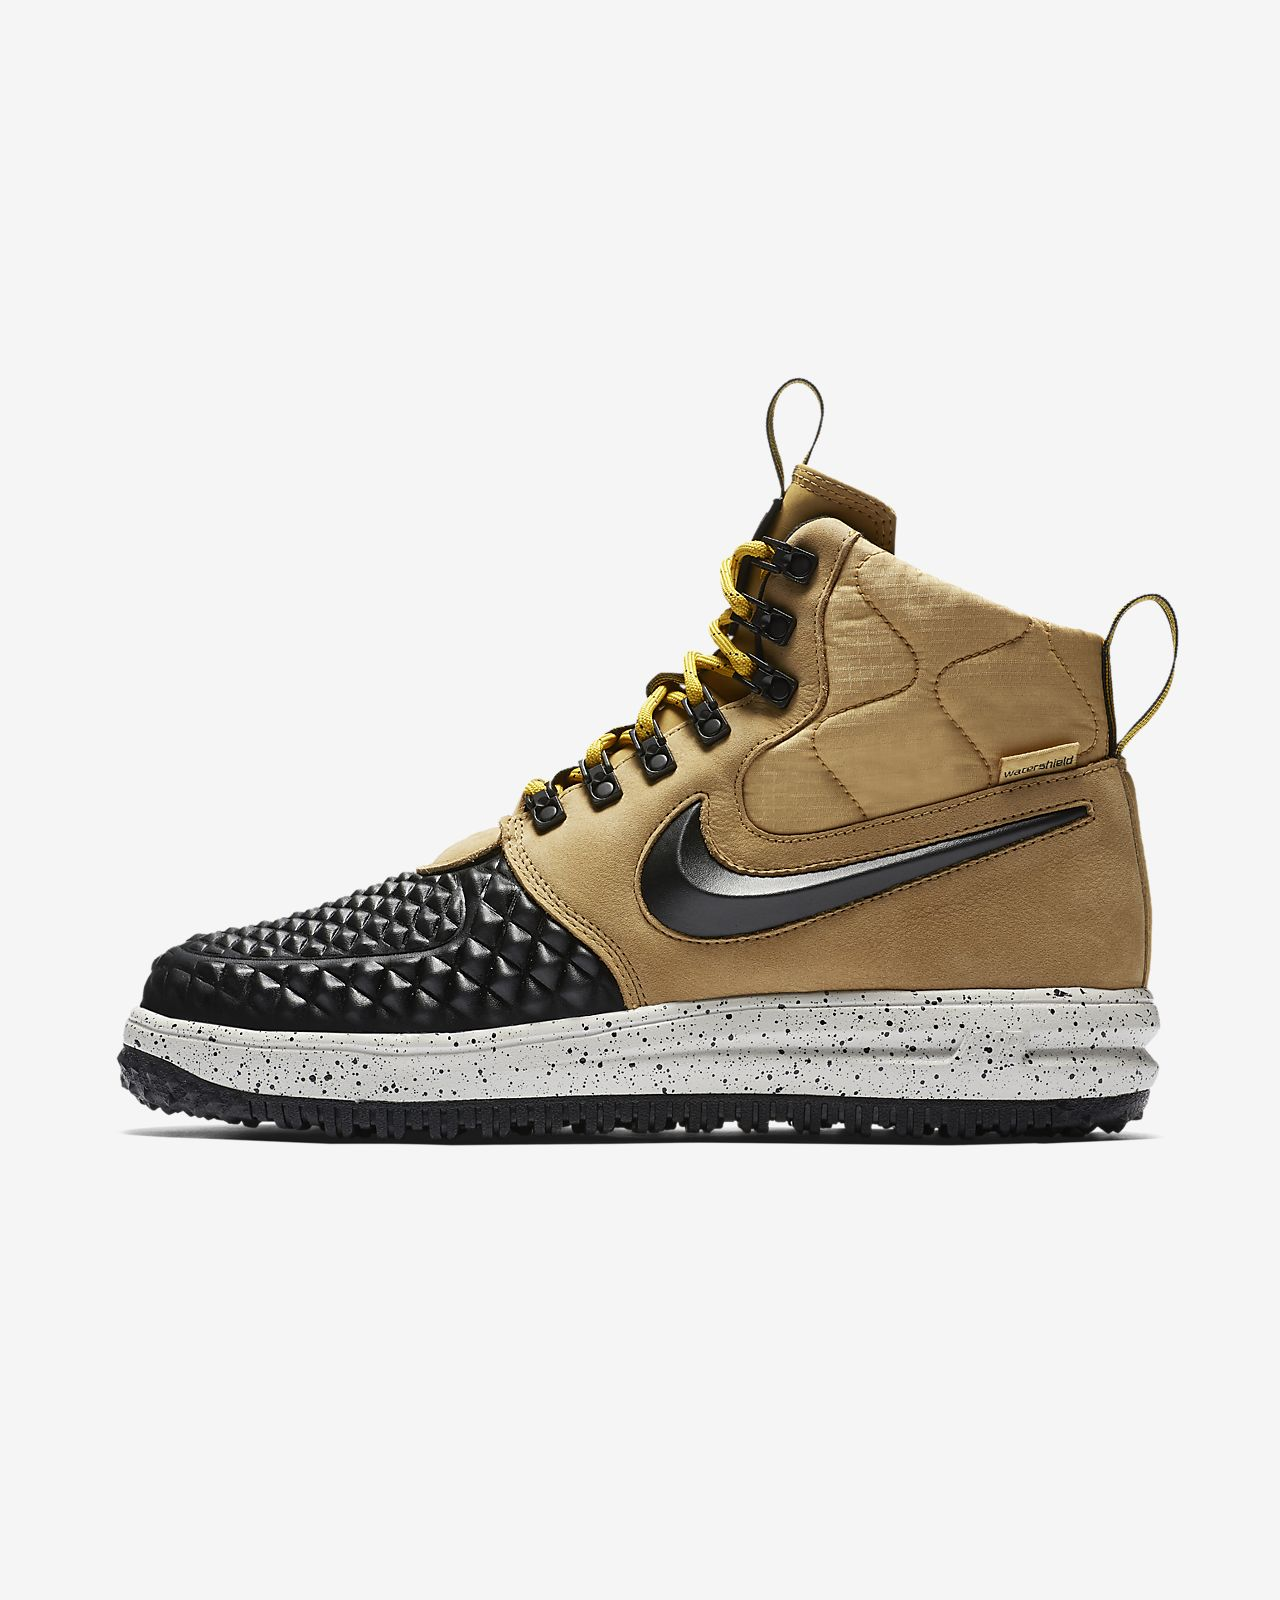 d755b3e4be05 nike lunar force 1 duckboot 17 available from renarts 170 color ...